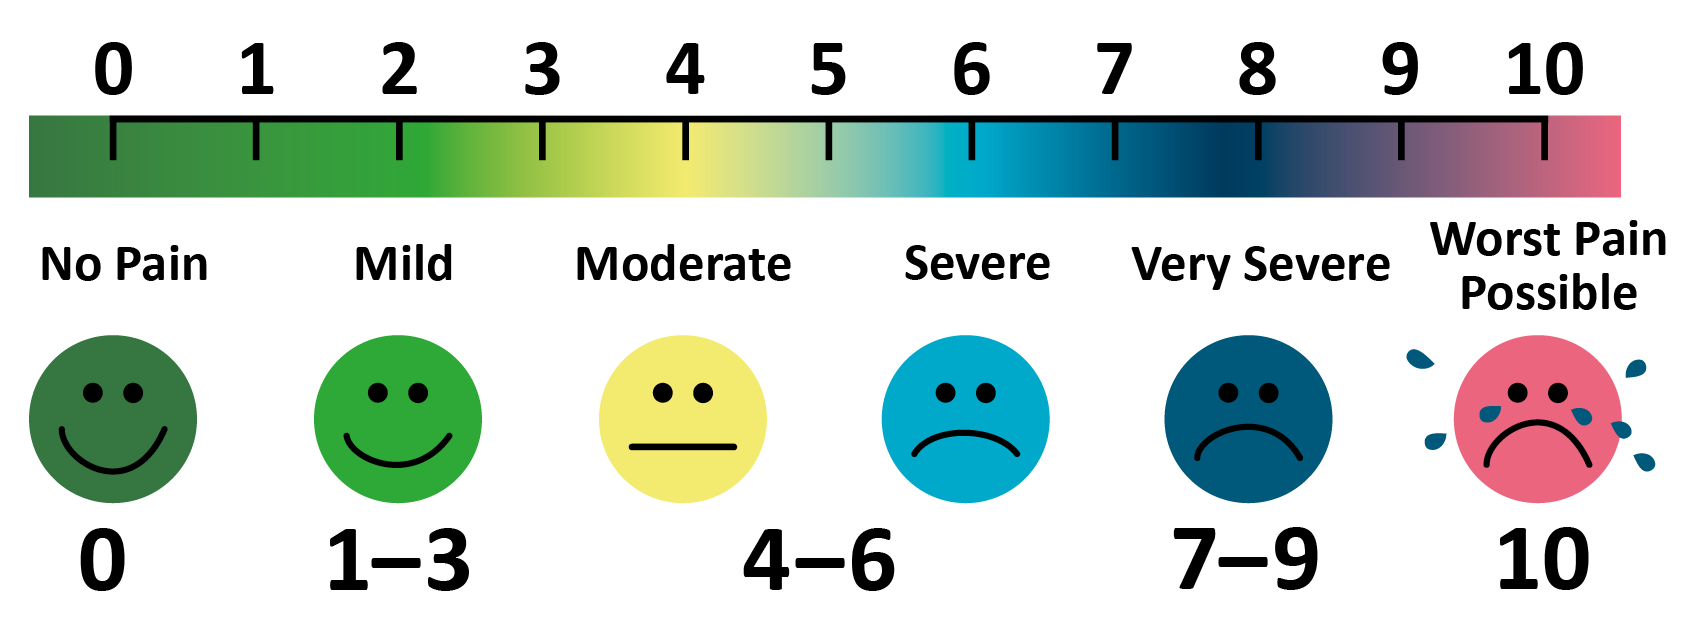 Exercise pain scale